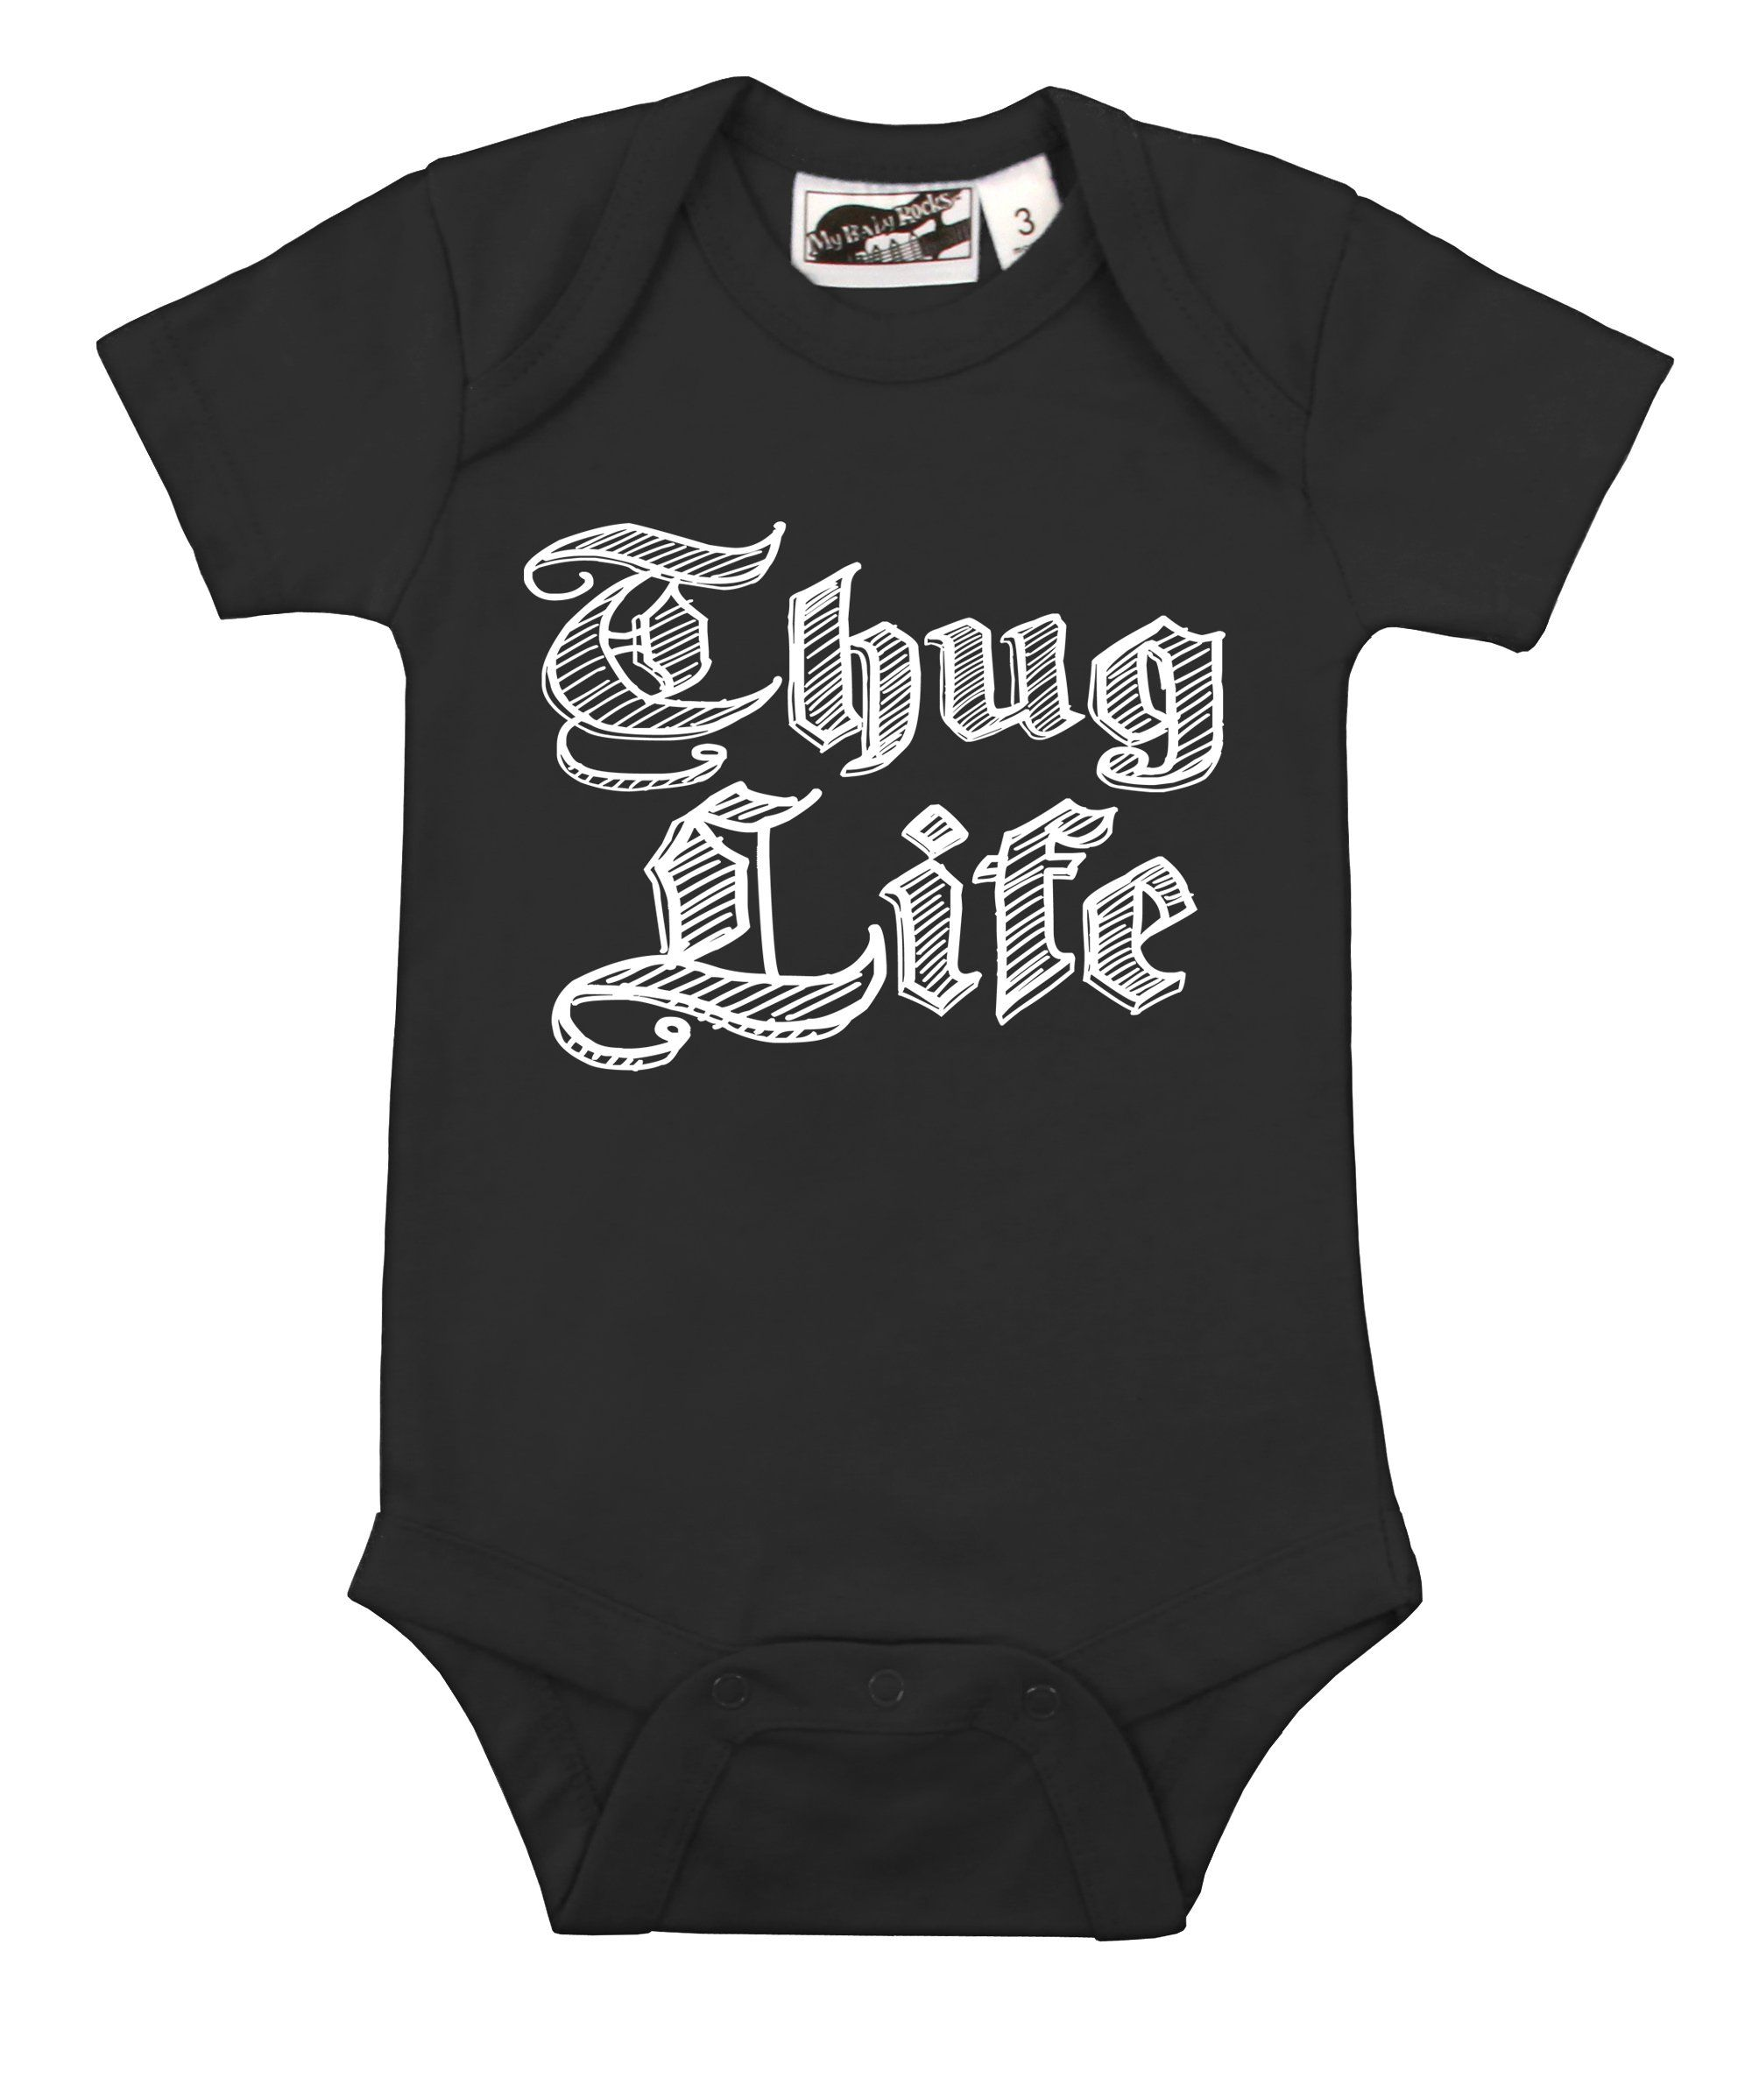 Thug Life Black e Piece punk funny urban hip hop and